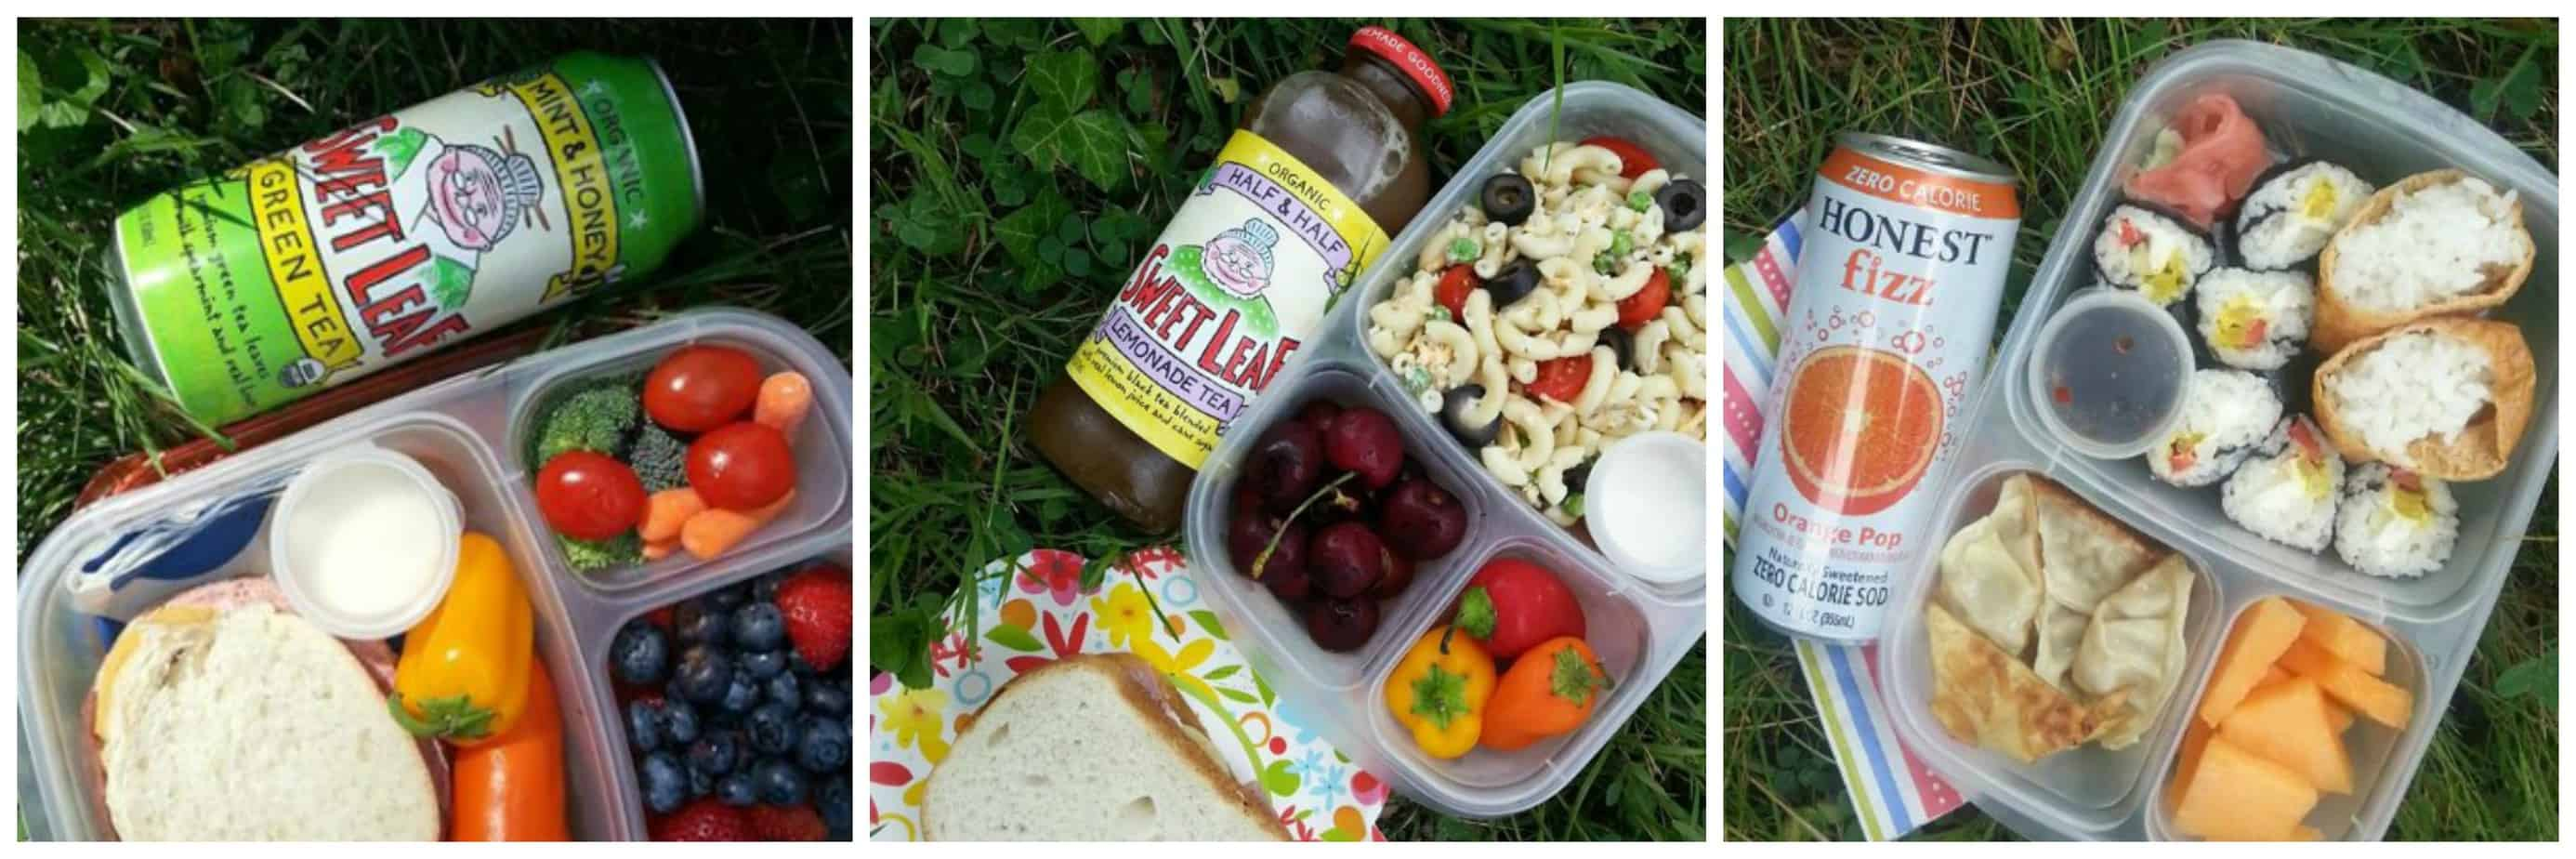 Healthy Lunch Box Ideas @ AVirtuousWoman.org